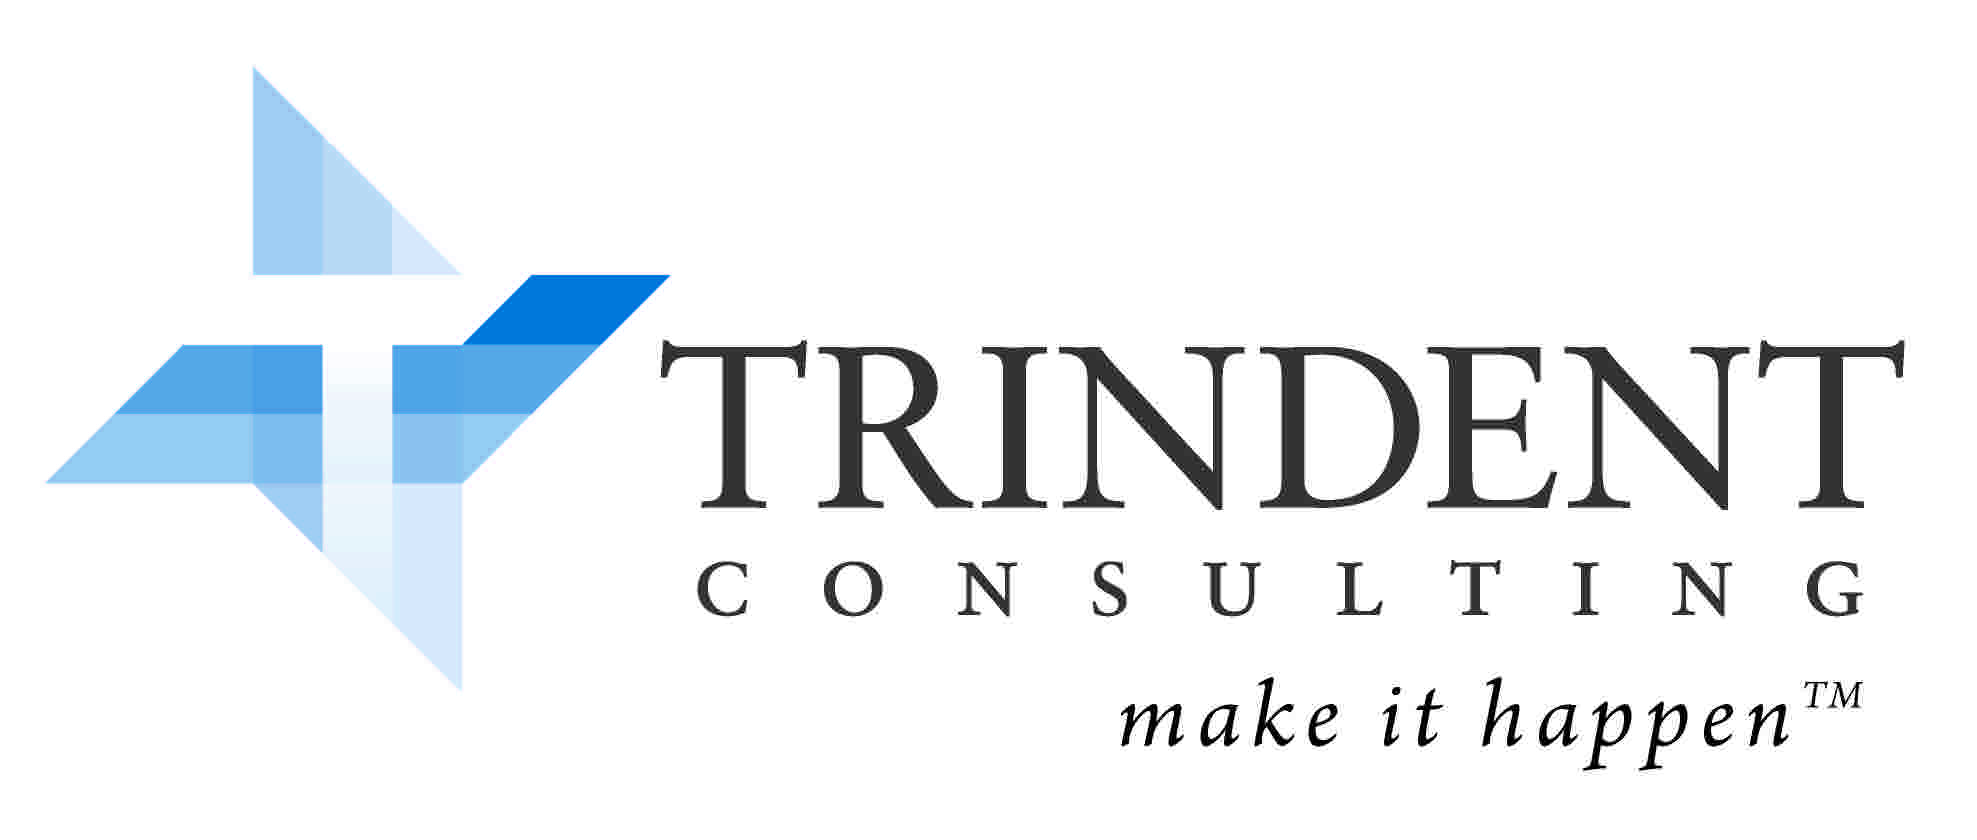 The 2016 Fastest Growing Firms: Trindent Consulting